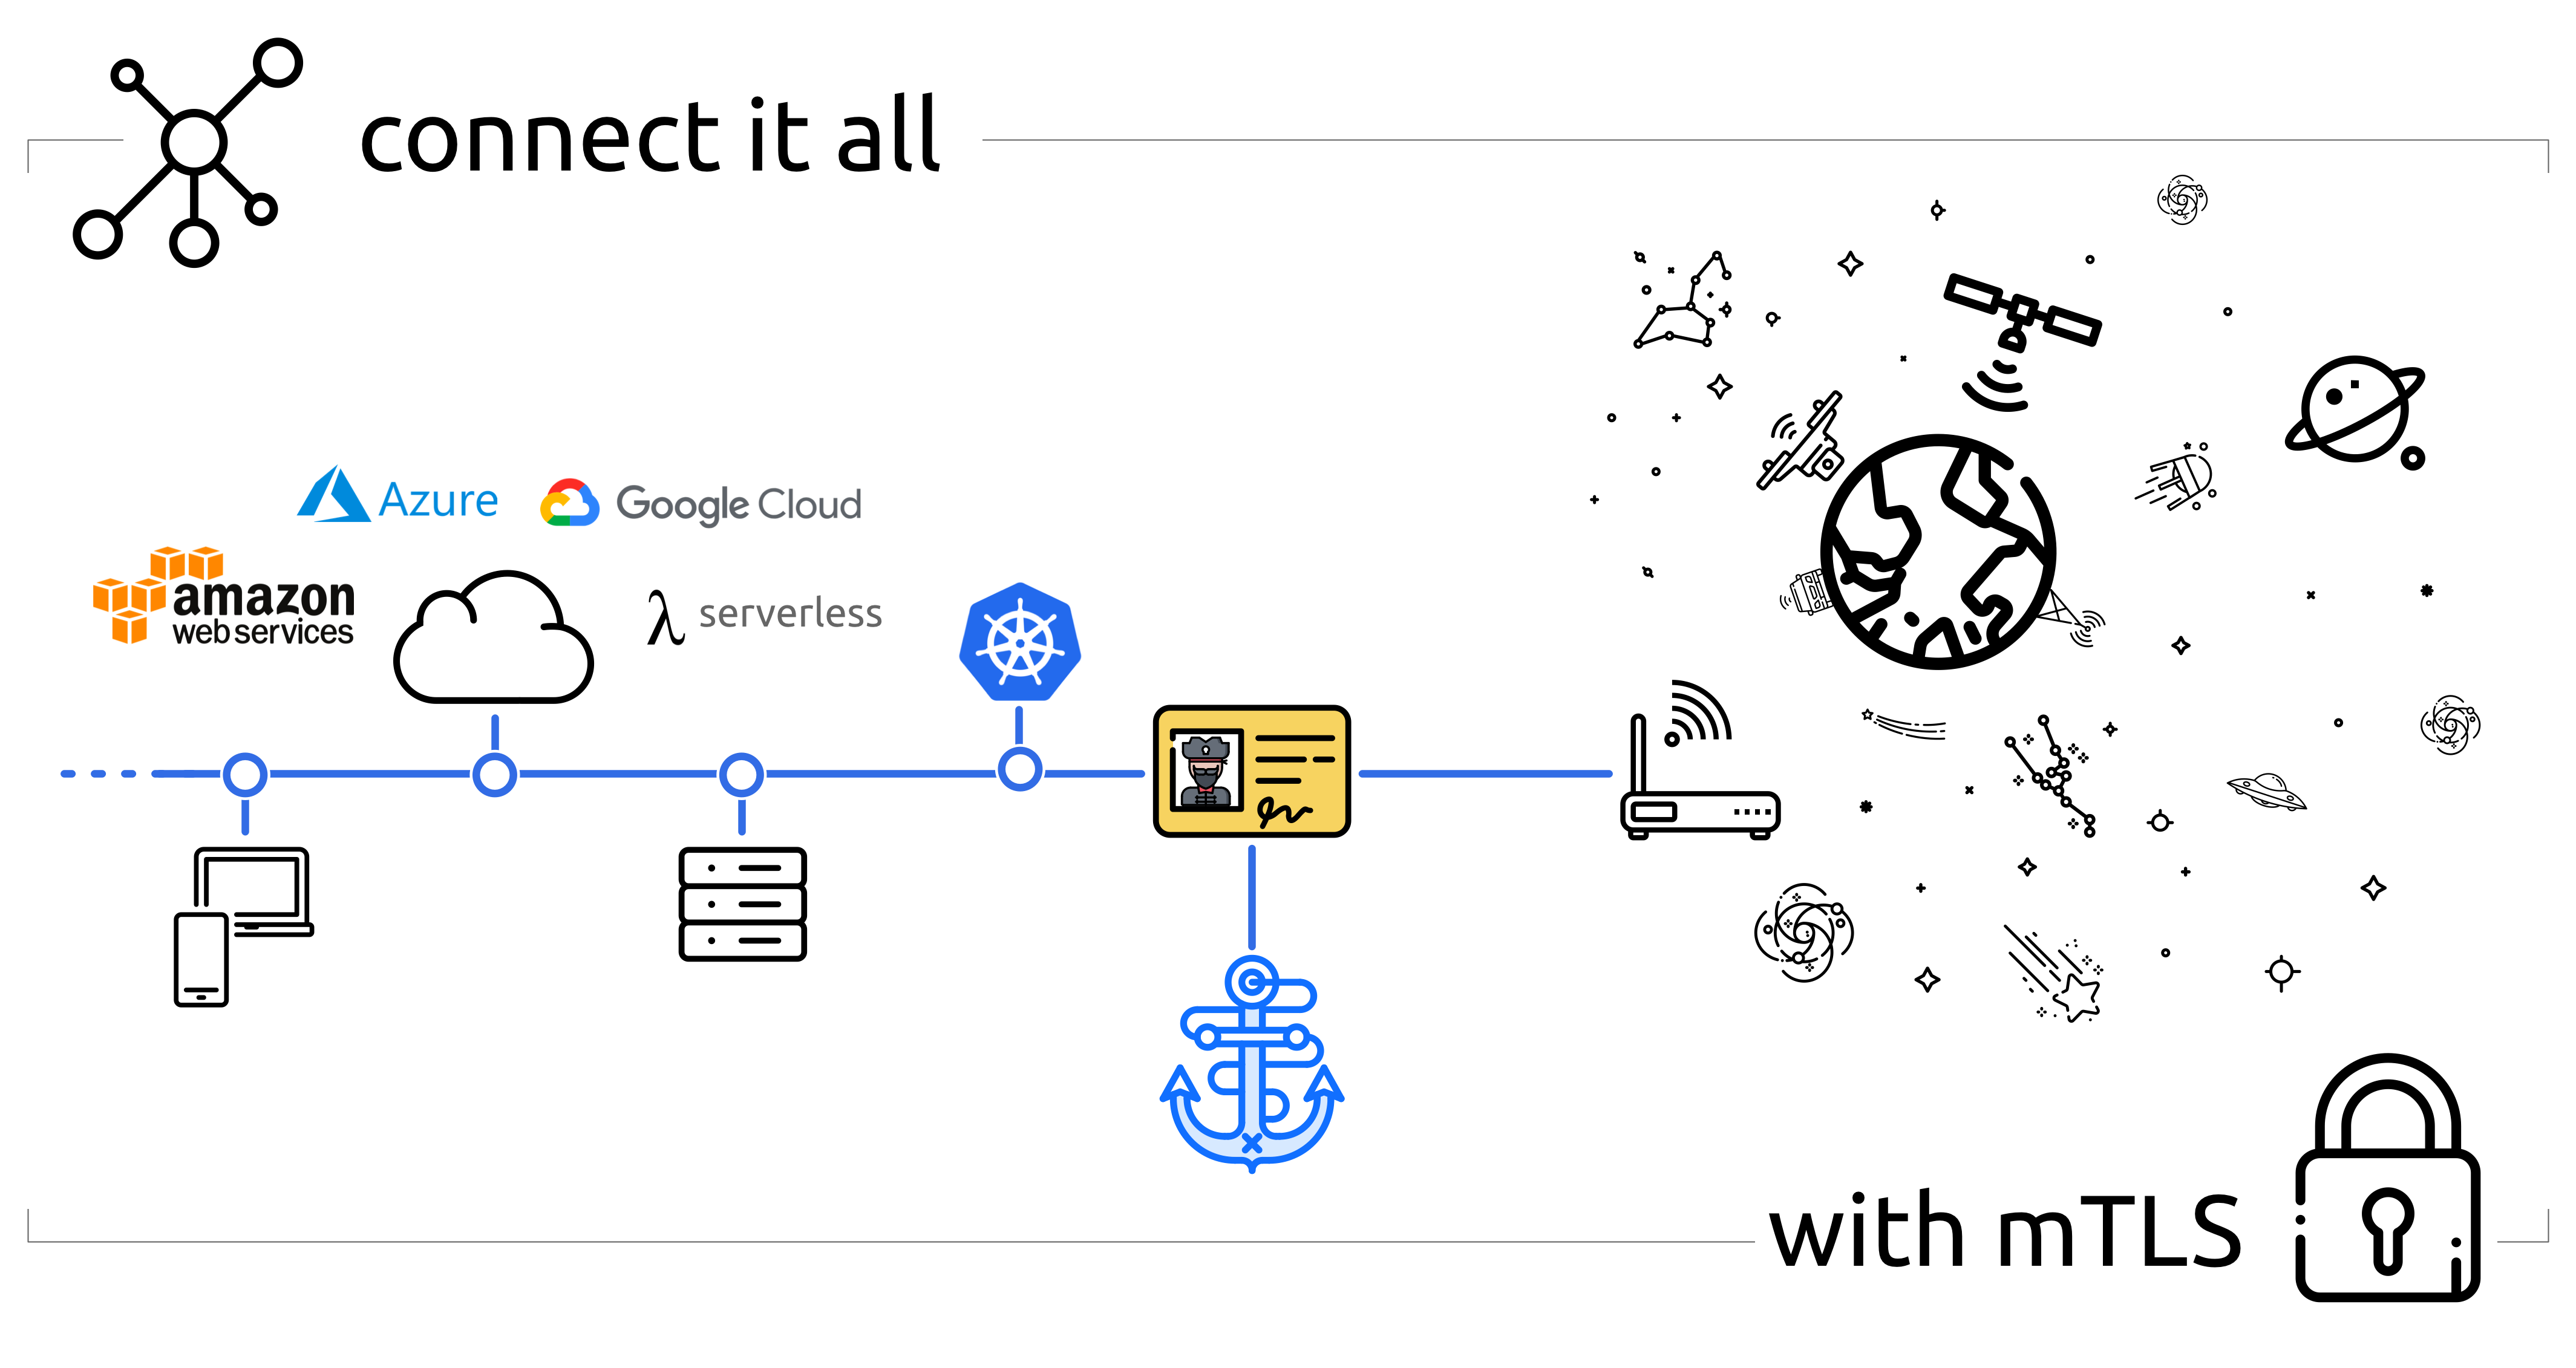 Connect everything with TLS!